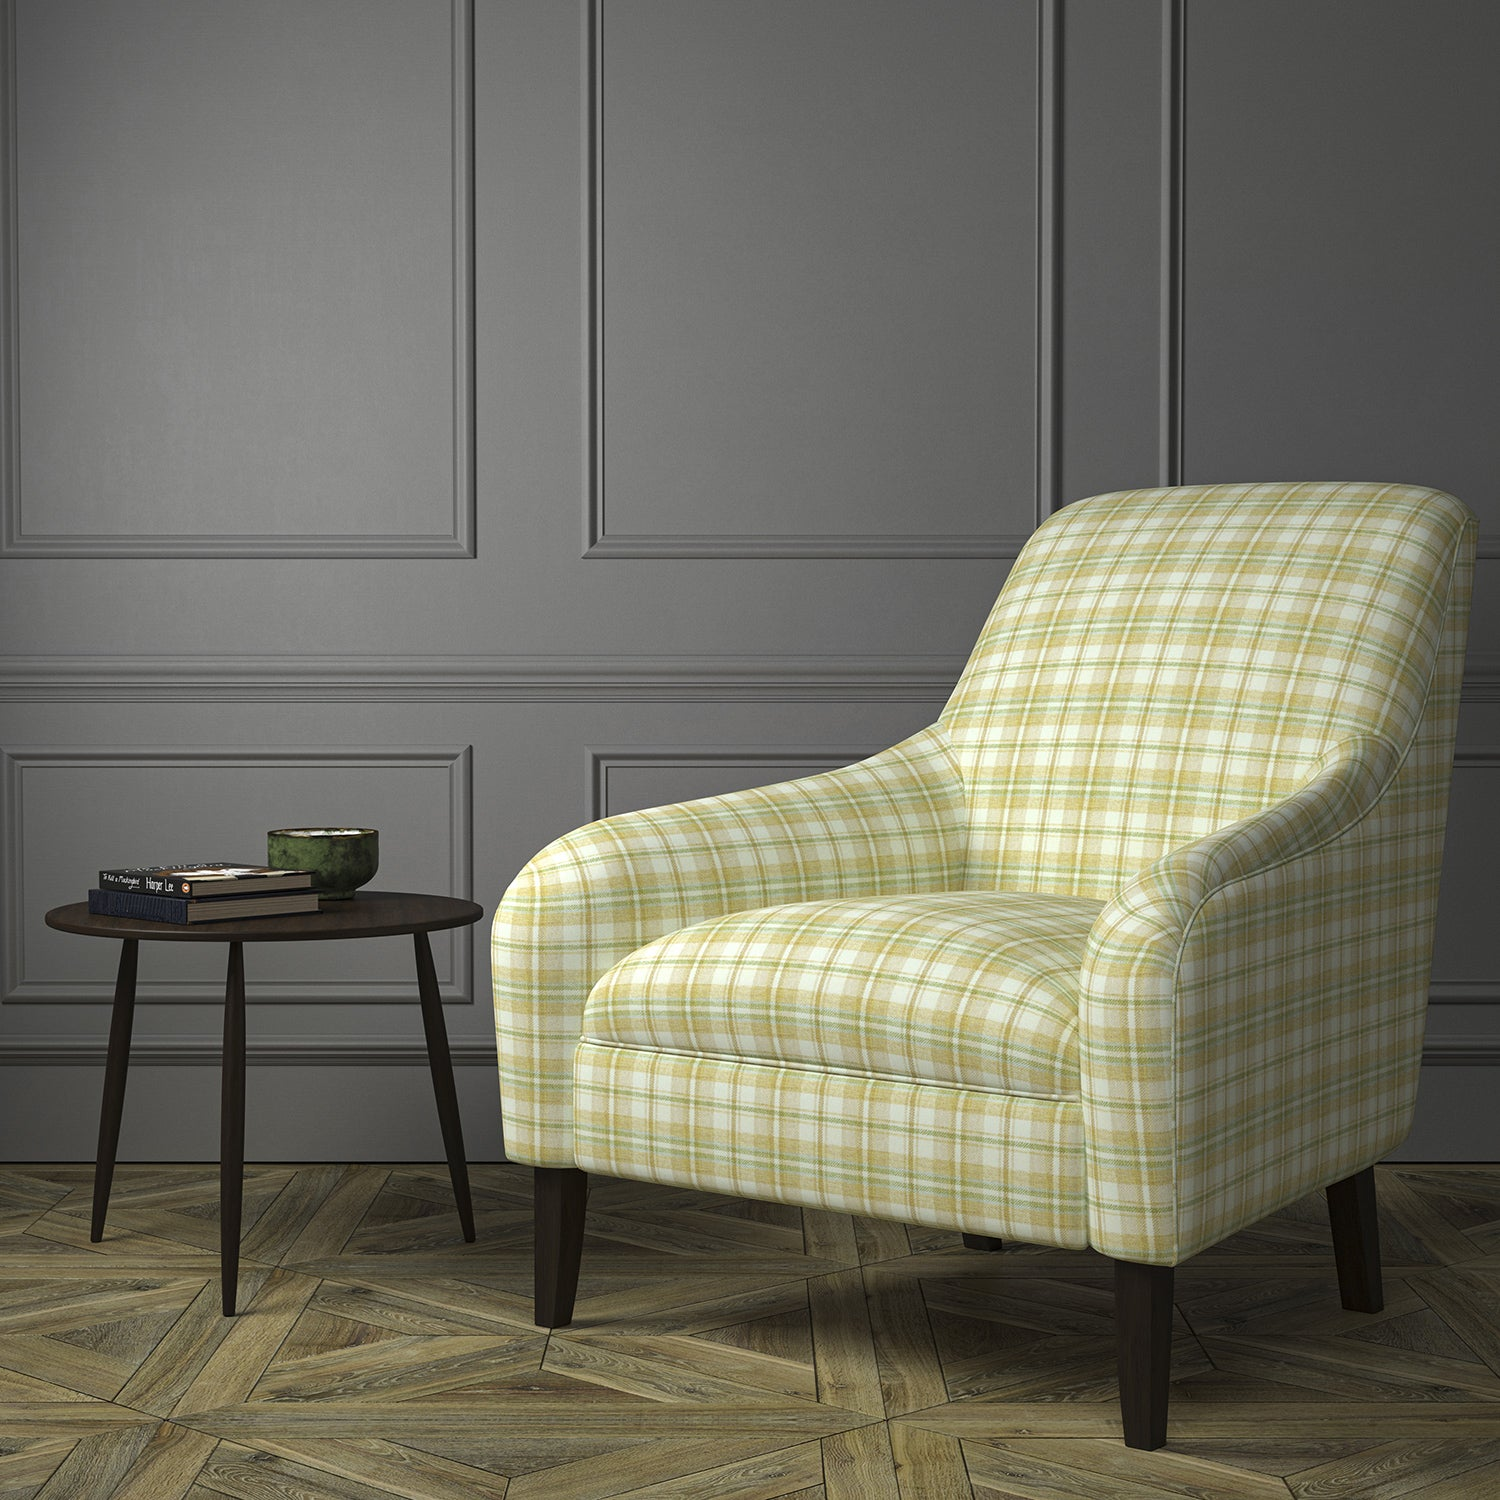 Chair upholstered in a luxury Scottish cream wool tartan upholstery fabric